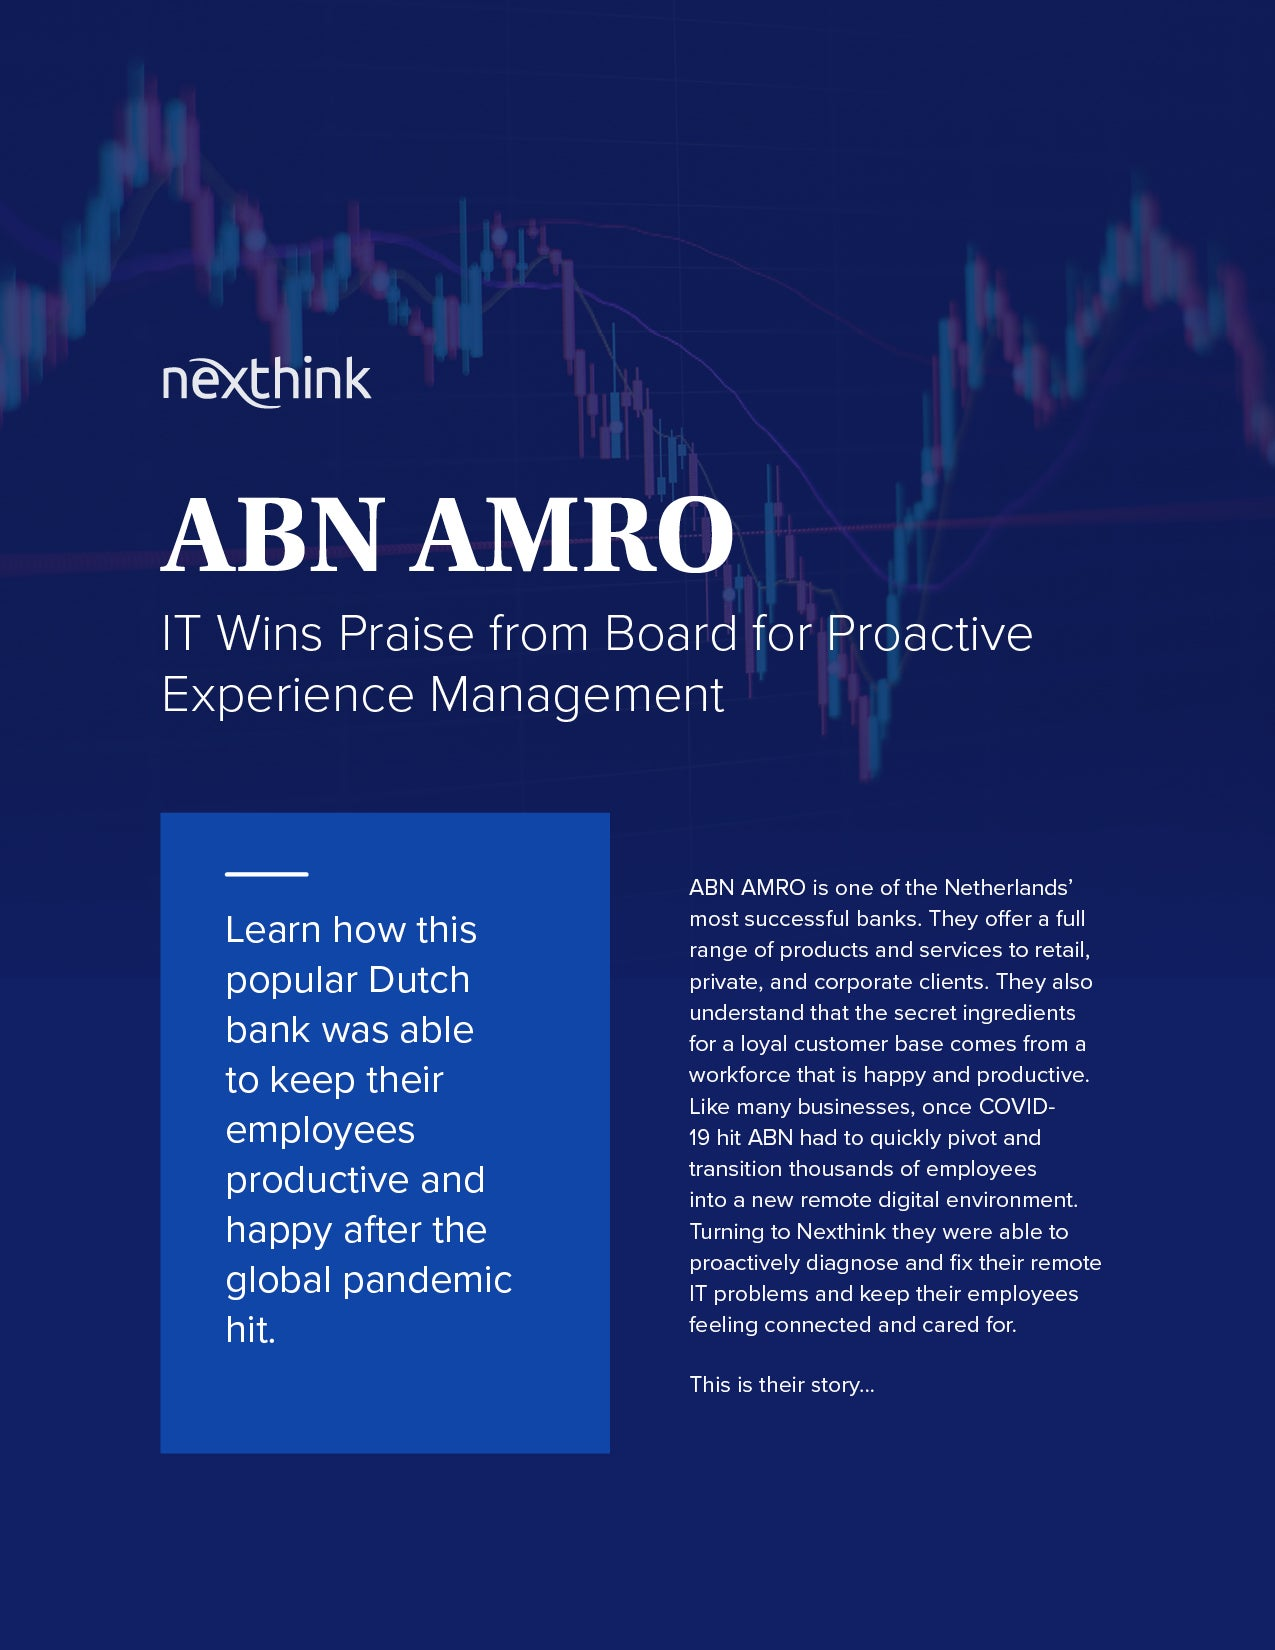 ABN AMRO: Proactive Experience Management